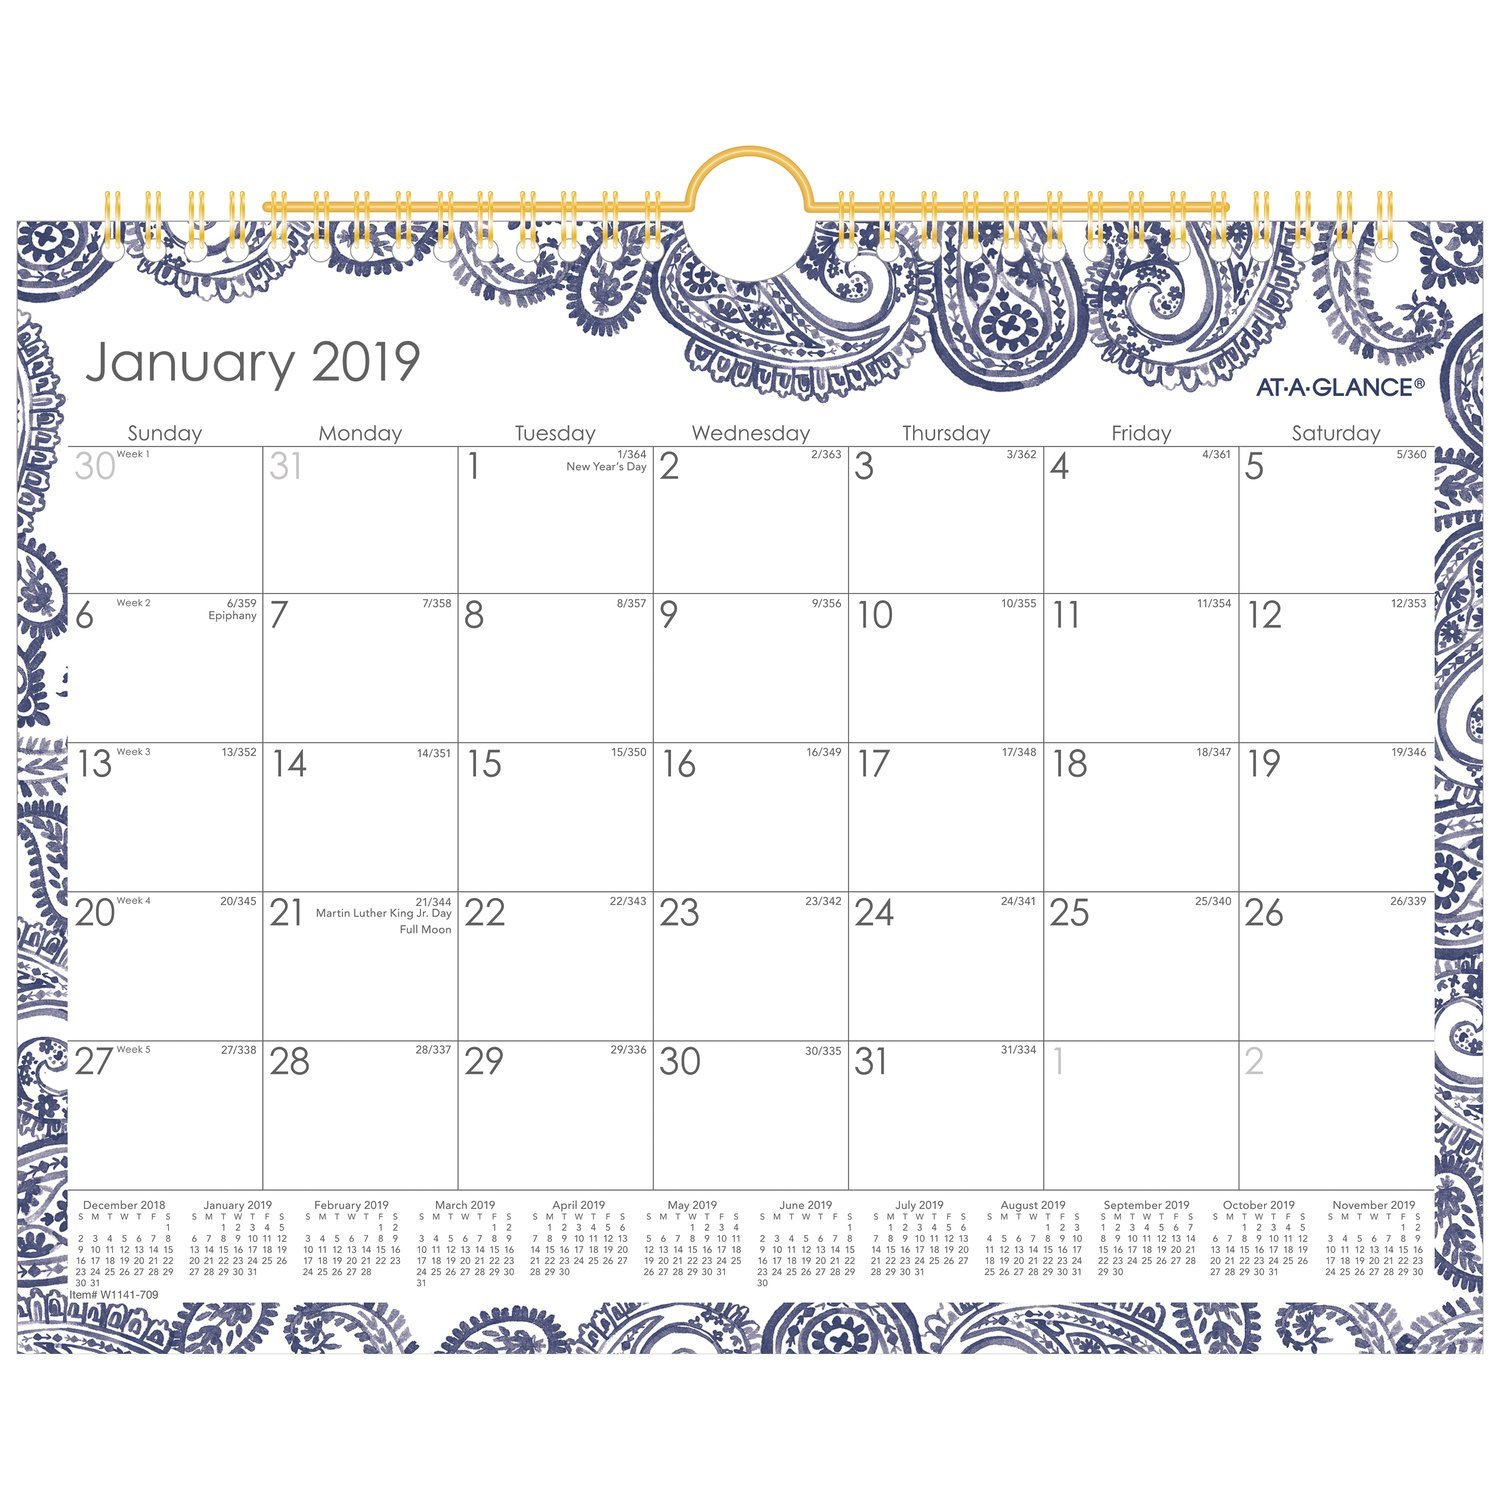 AT-A-GLANCE 2019 Monthly Wall Calendar, 11'' x 8-1/2'', Small, Wirebound, Paige (W1141-709)